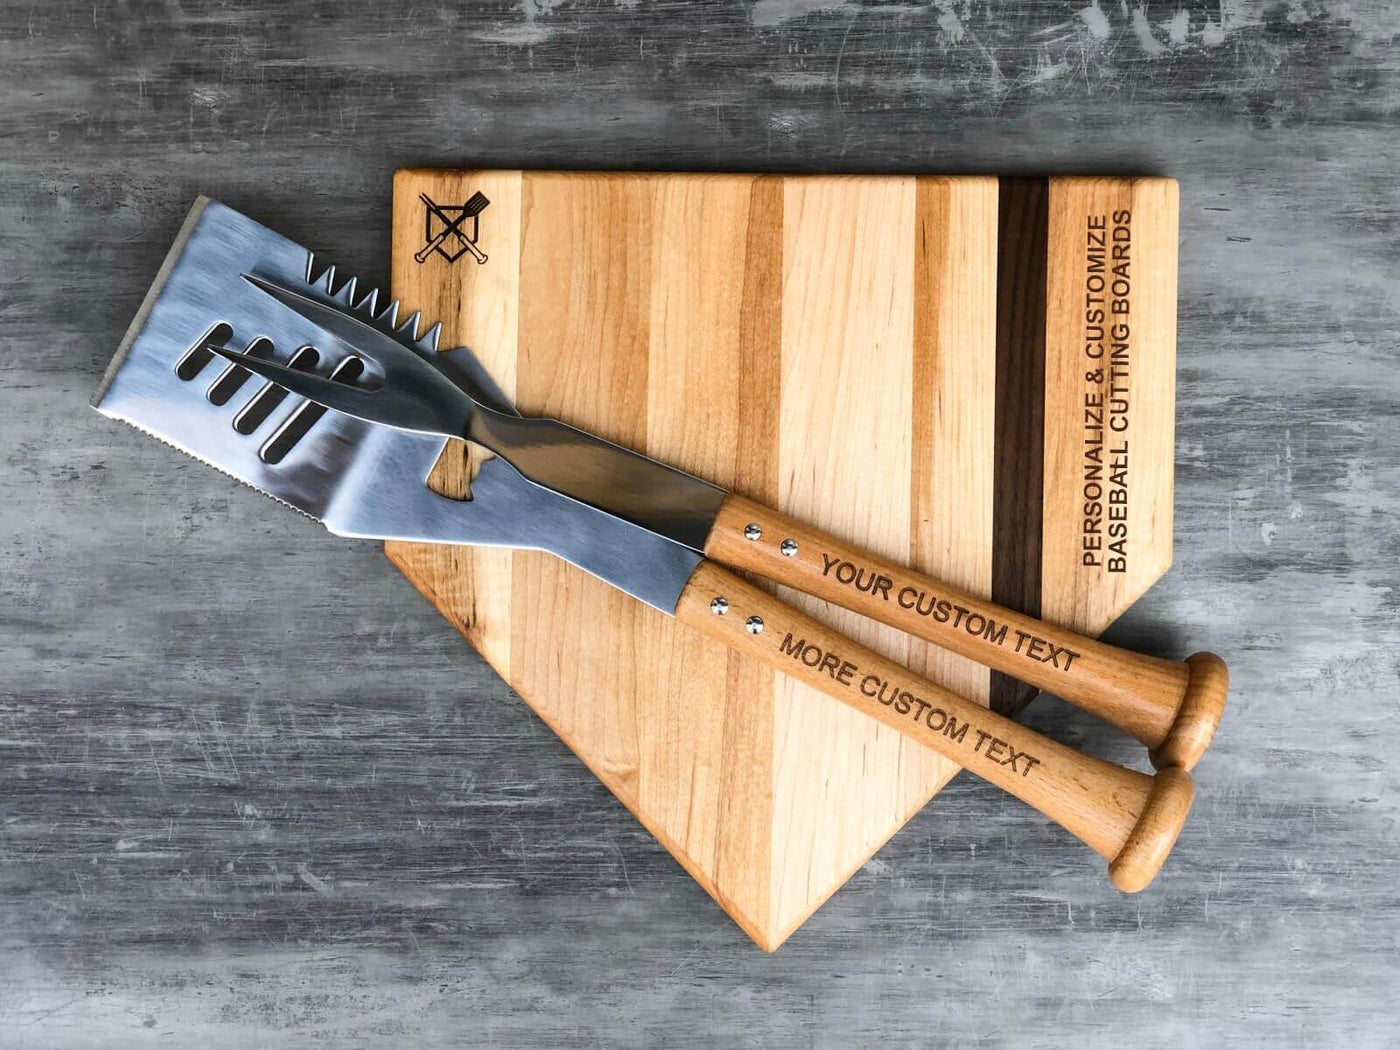 Personalized BBQ grill tools with wood baseball bat hats. Customized Baseball BBQ tools make the perfect gift for baseball and BBQ fans for Father's Day, birthdays, housewarmings.